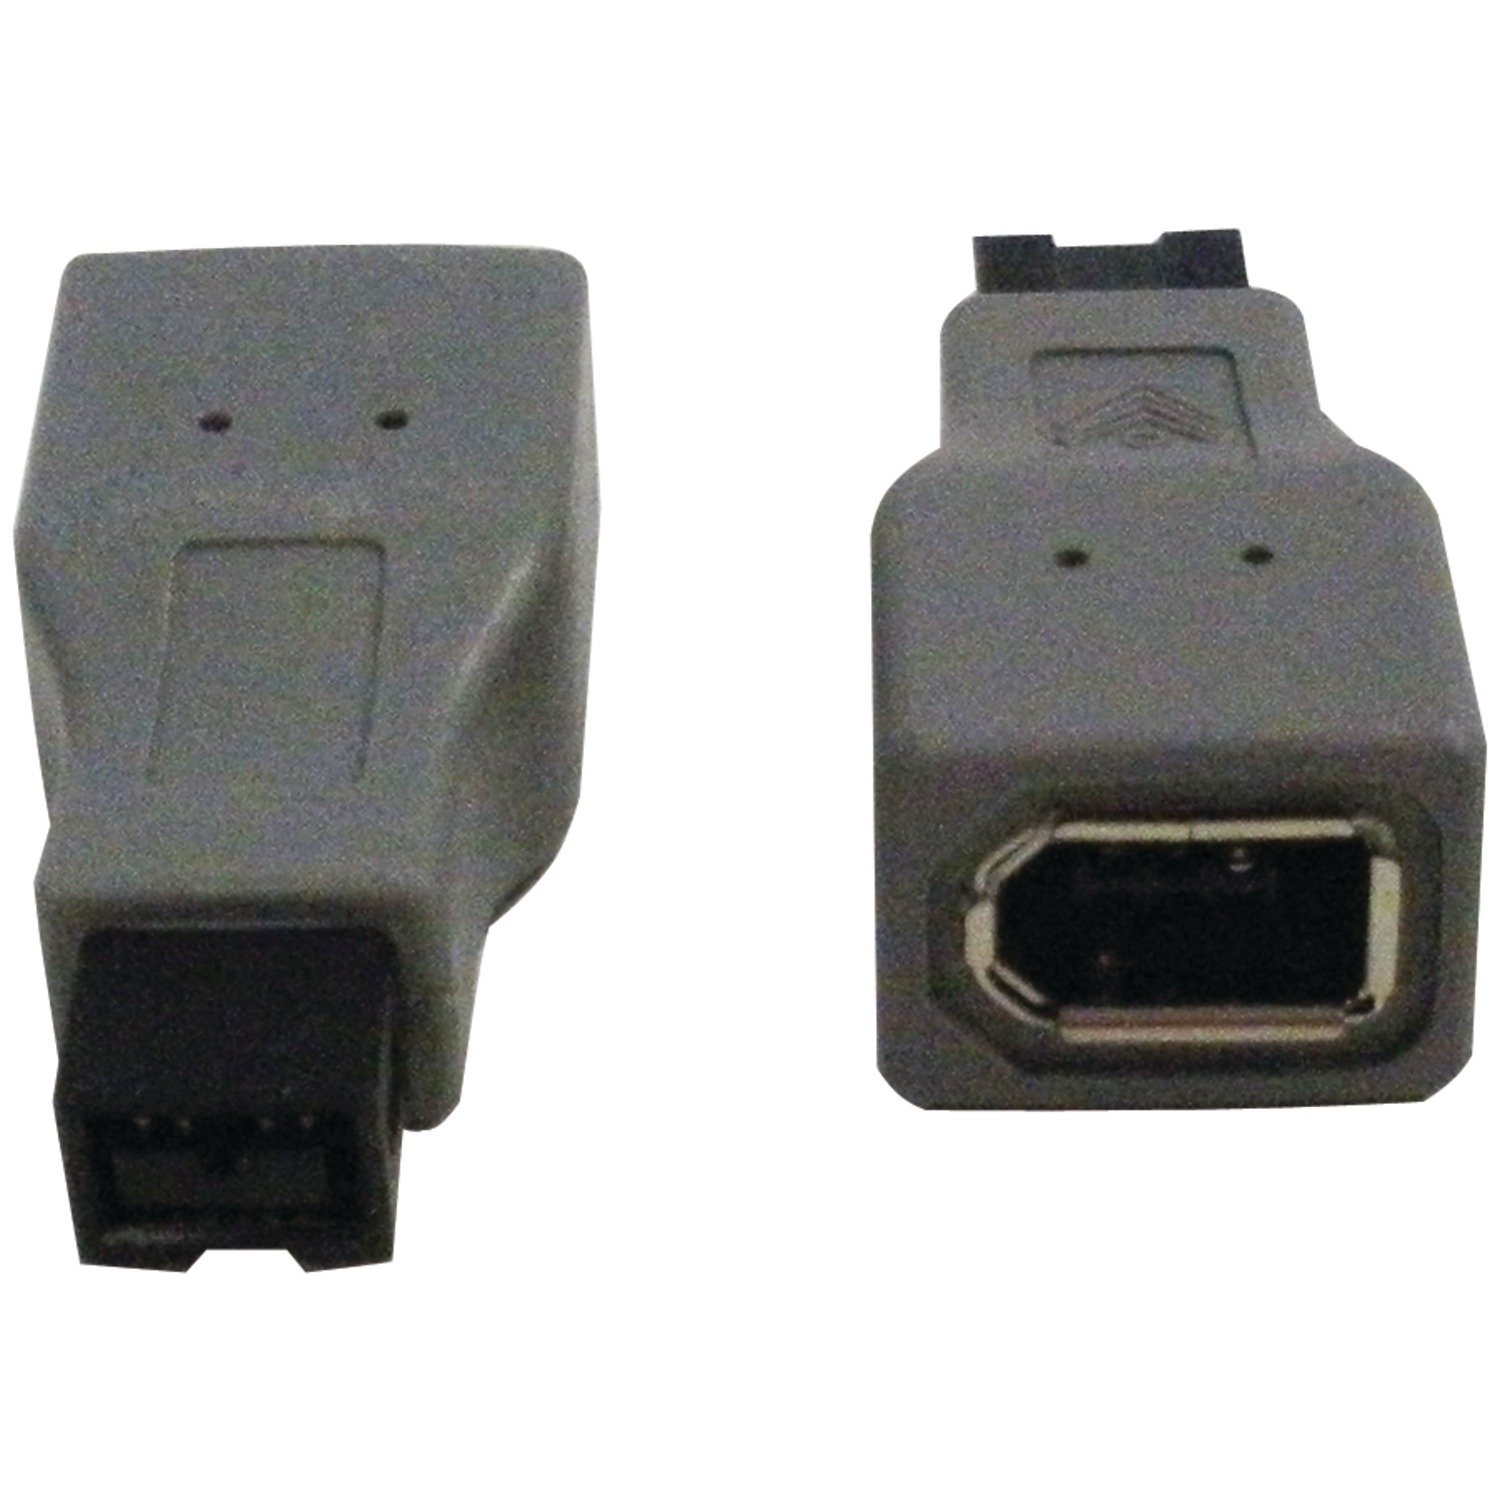 Micro Accessories FIR-1369-AD-01 400 to 800 FireWire Cable - Walmart.com